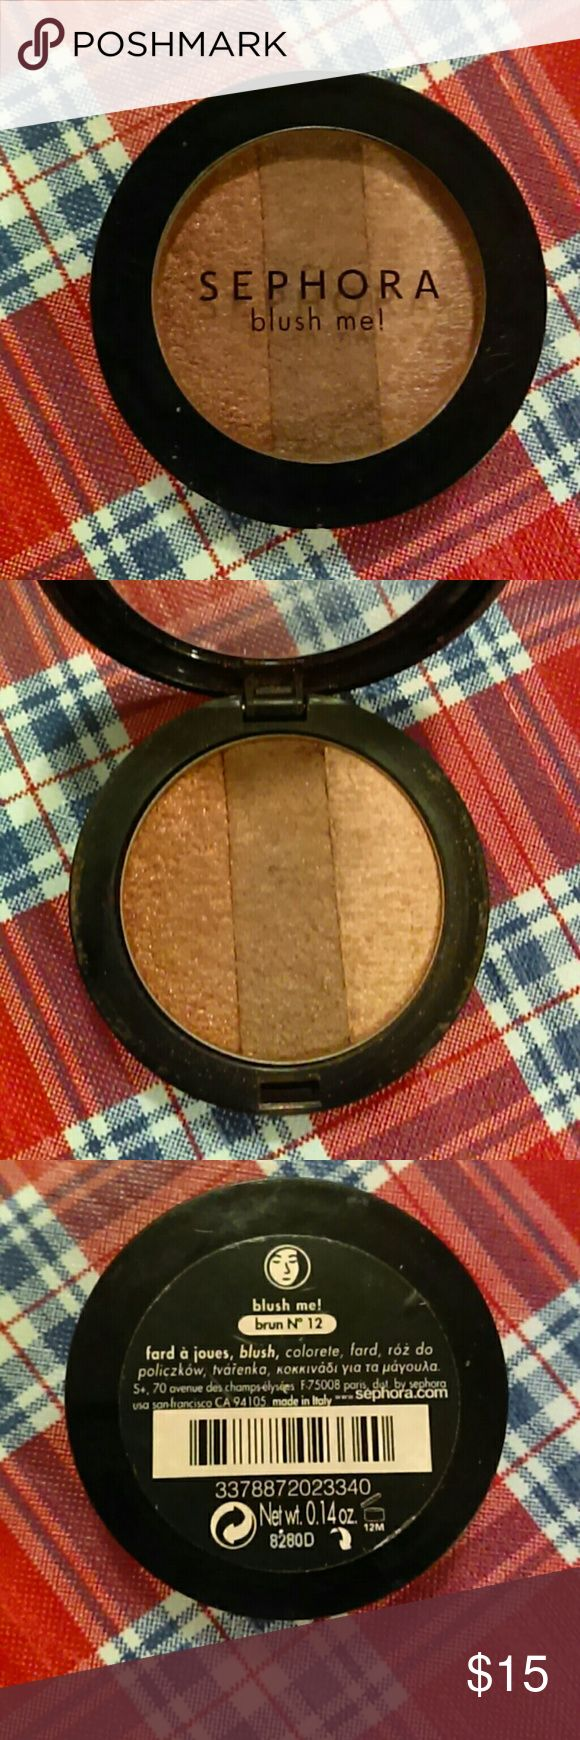 Sephora Blush Me! Brun No. 12 Sephora Blush Me! brun no. 12. Three different shades are included in this one compact. Original packaging is missing but it has never been used. Sephora Makeup Blush